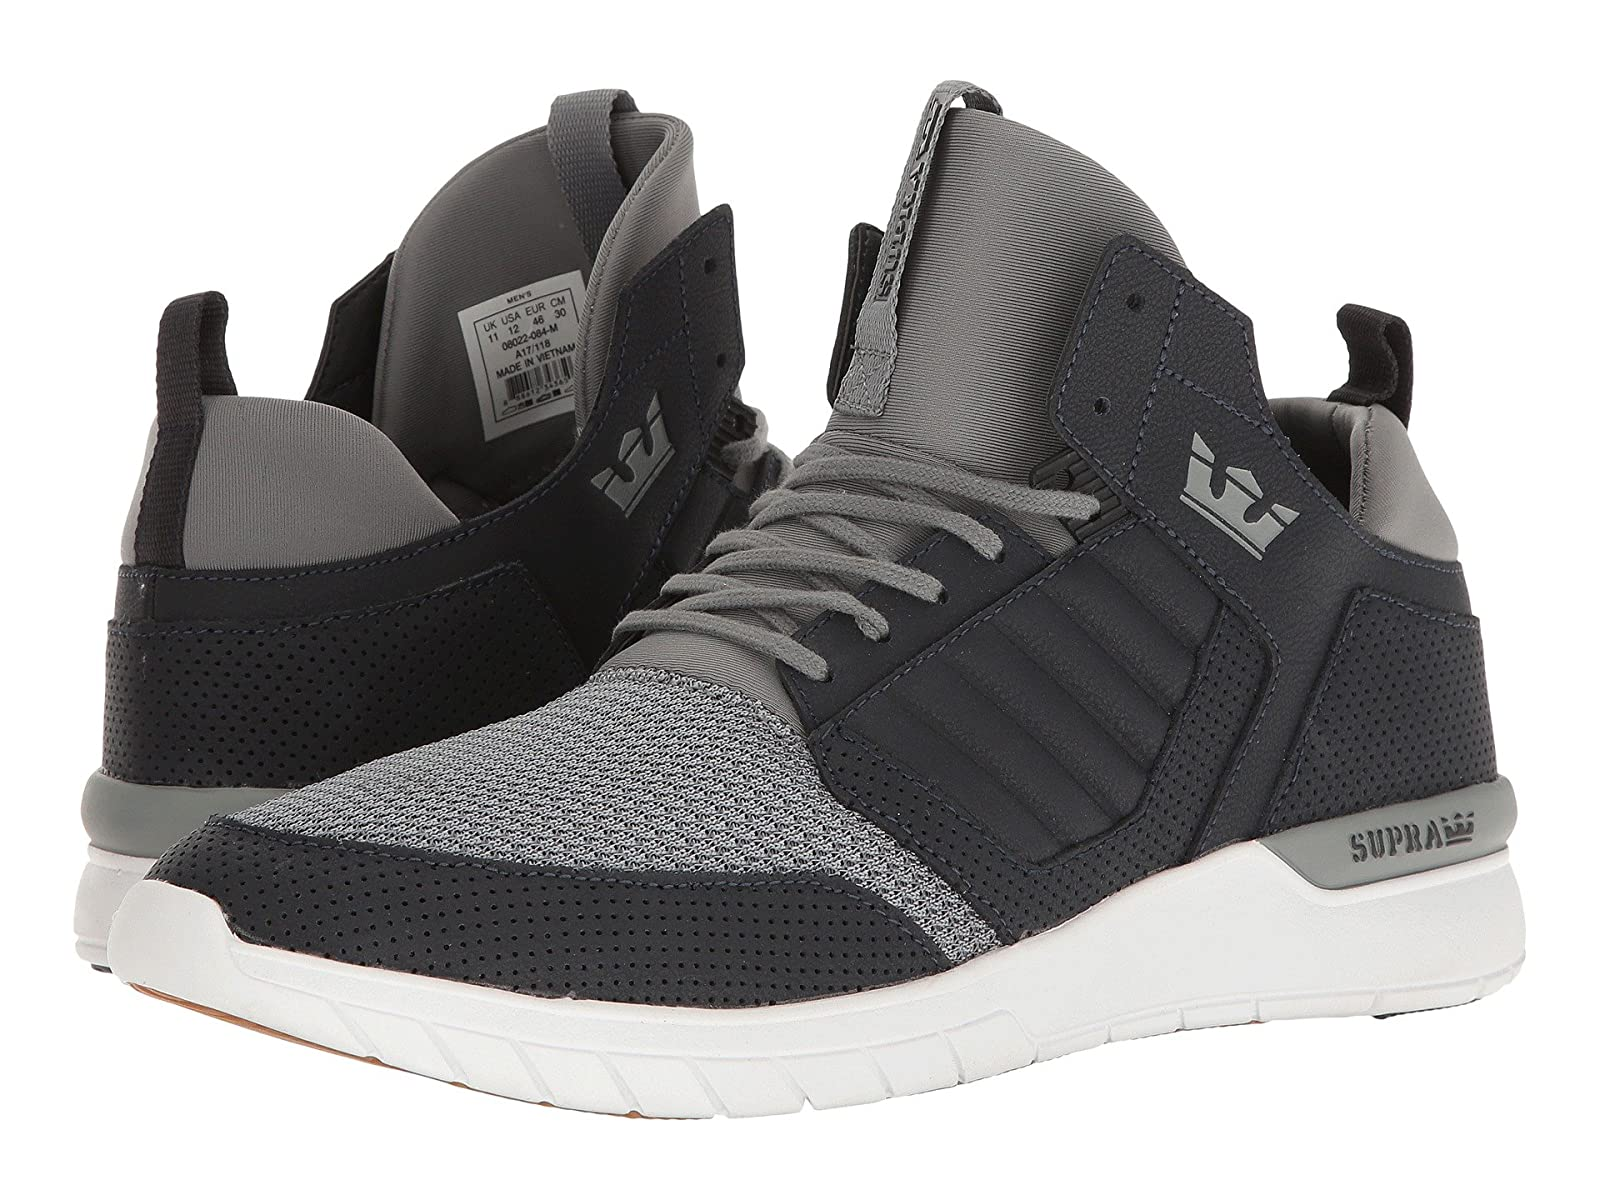 Supra MethodCheap and distinctive eye-catching shoes